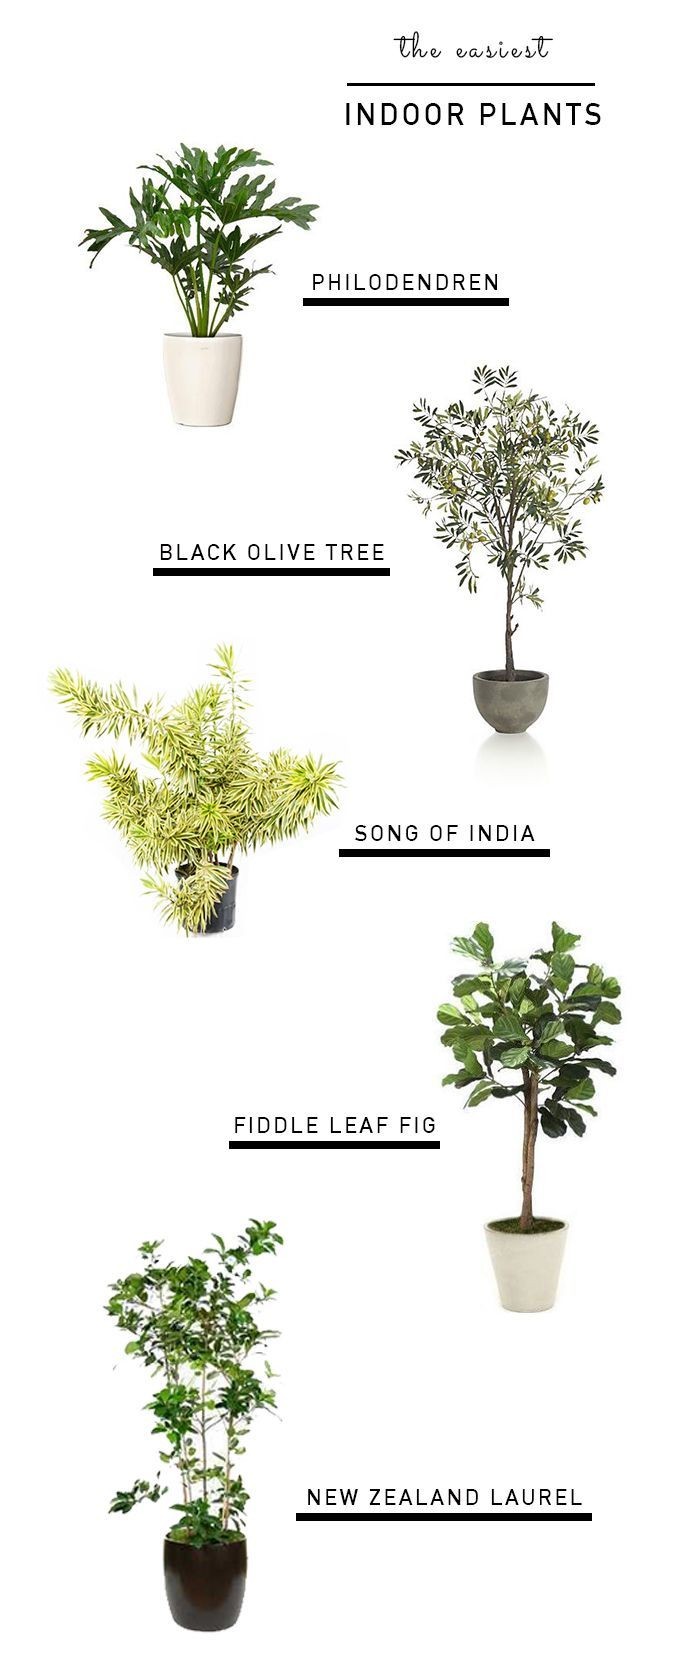 Must buy a few different house plants … thanks for ideas, Emily. http://stylebyemilyhenderson.com/blog/the-tropics-inc-and-guide-to-the-easiest-indoor-plants